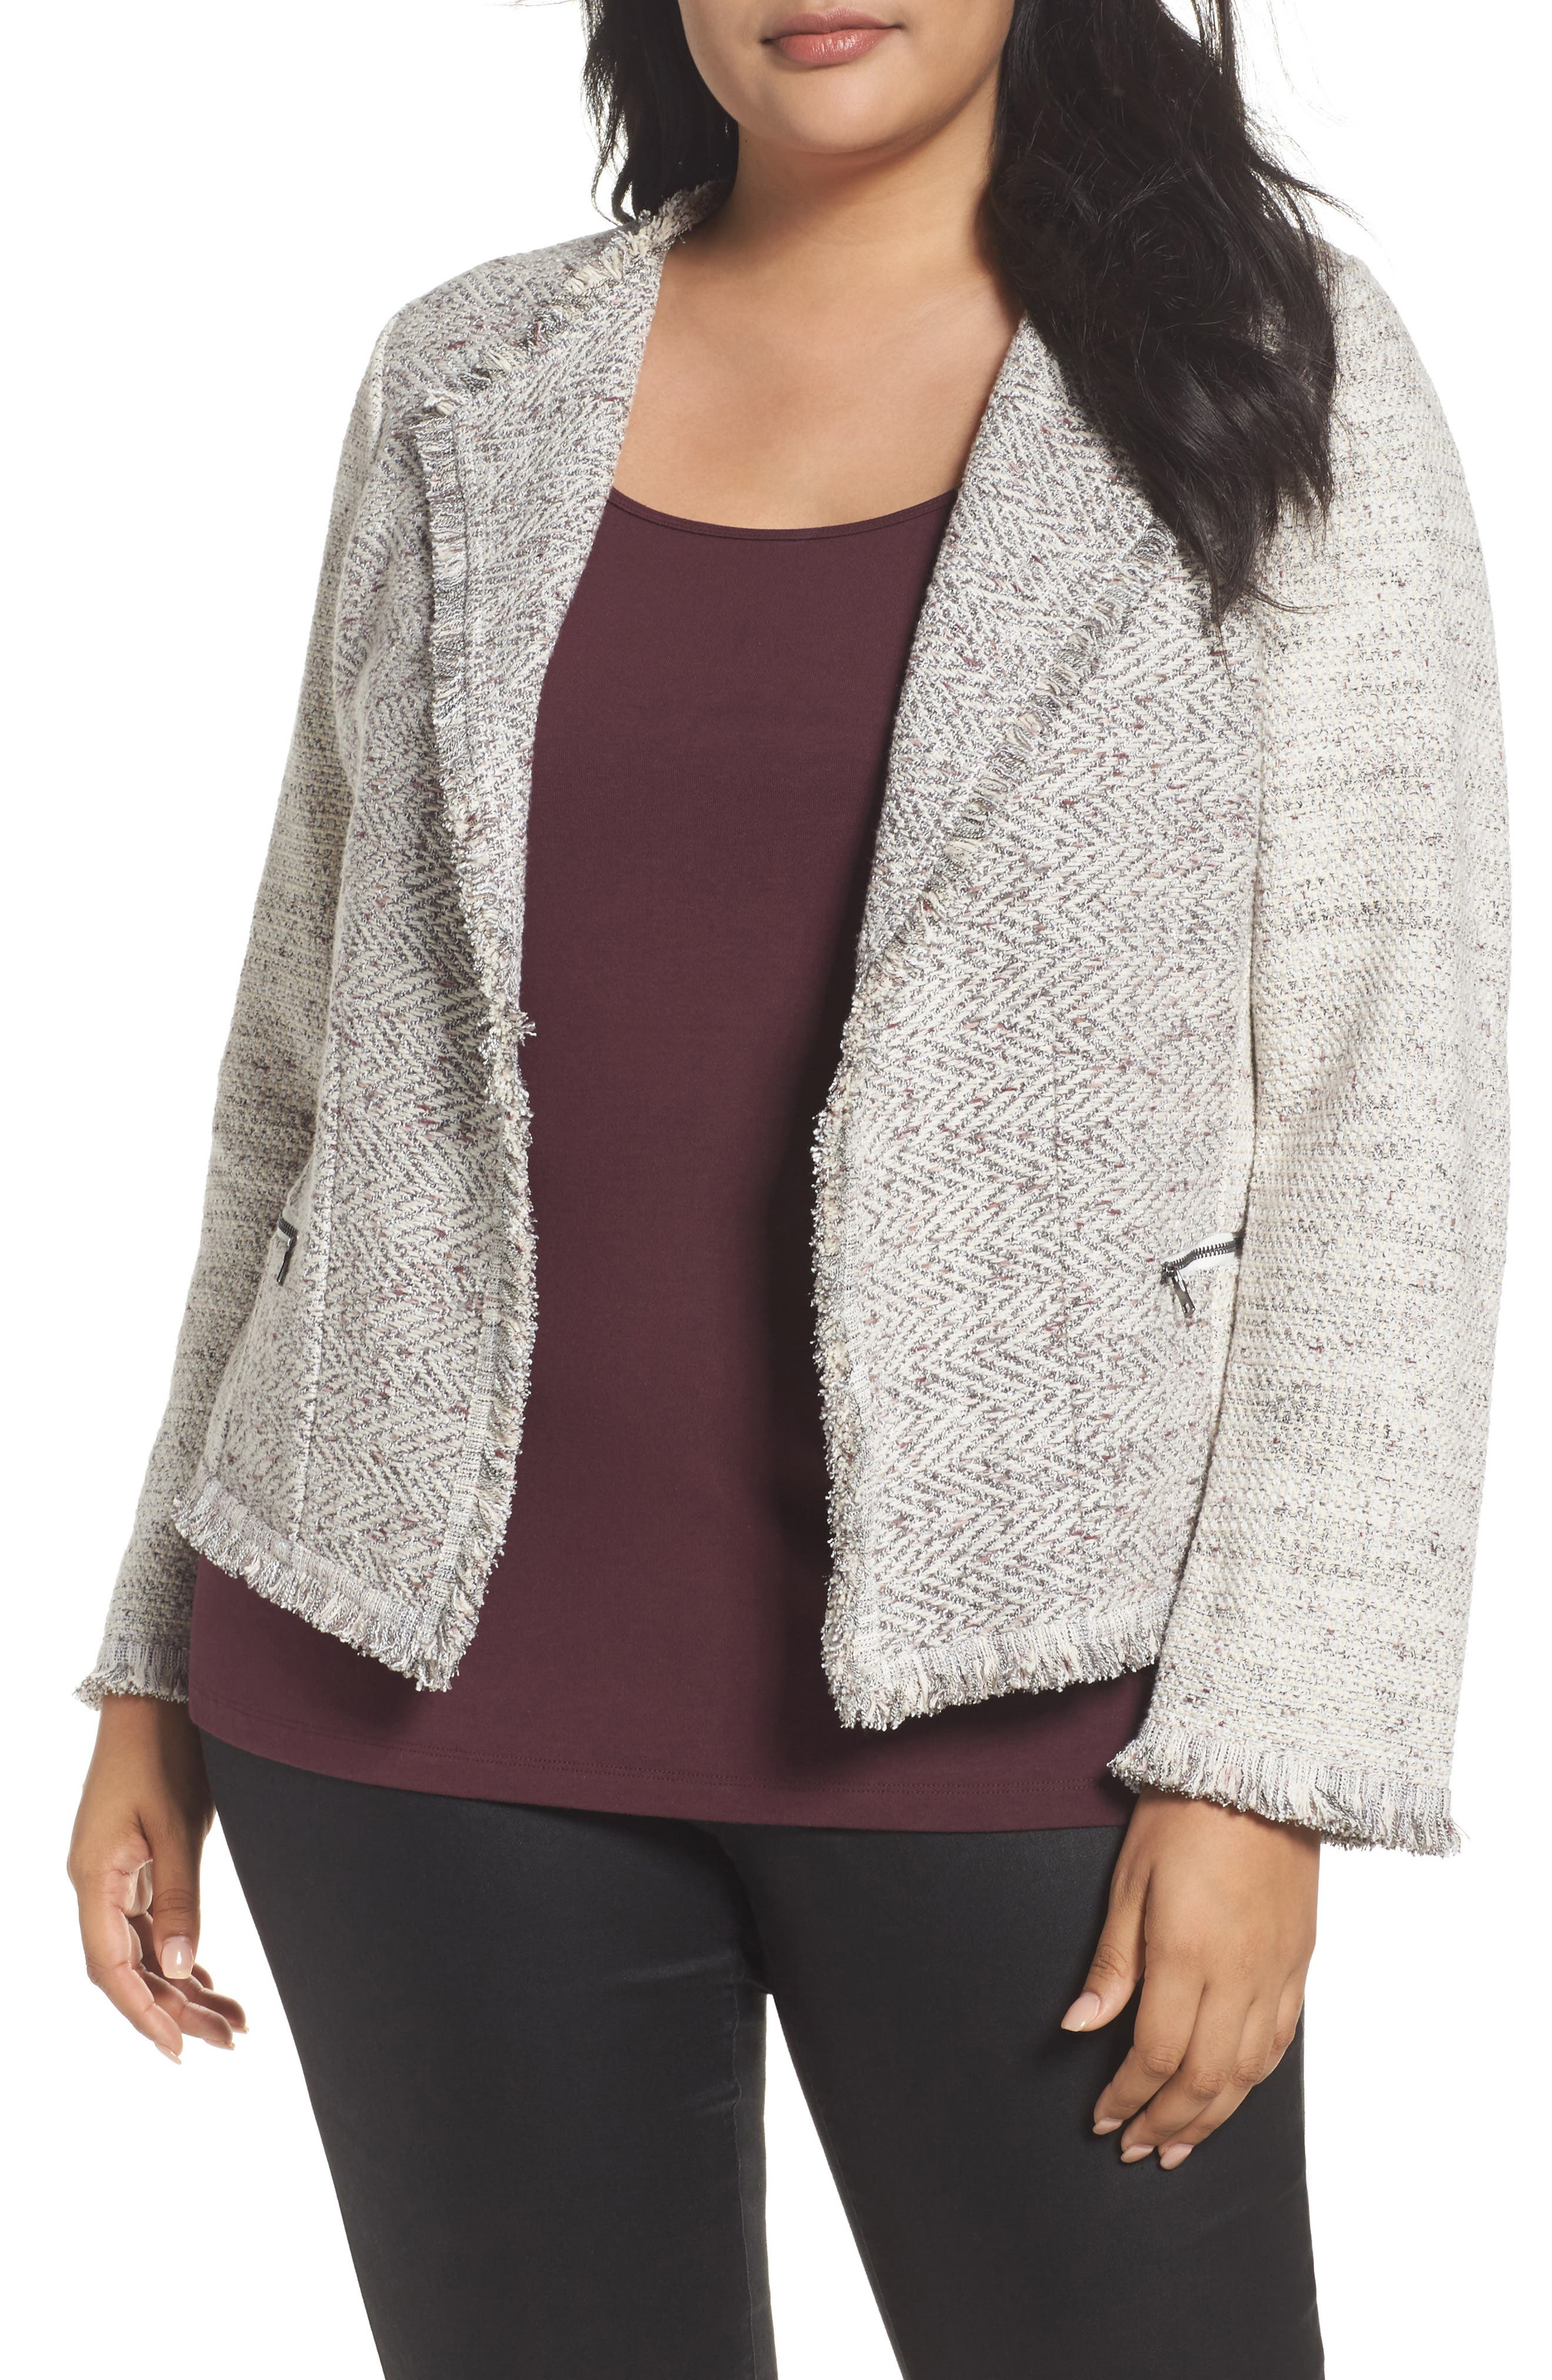 Chilled Tweed Jacket,                         Main,                         color, Grey Multi